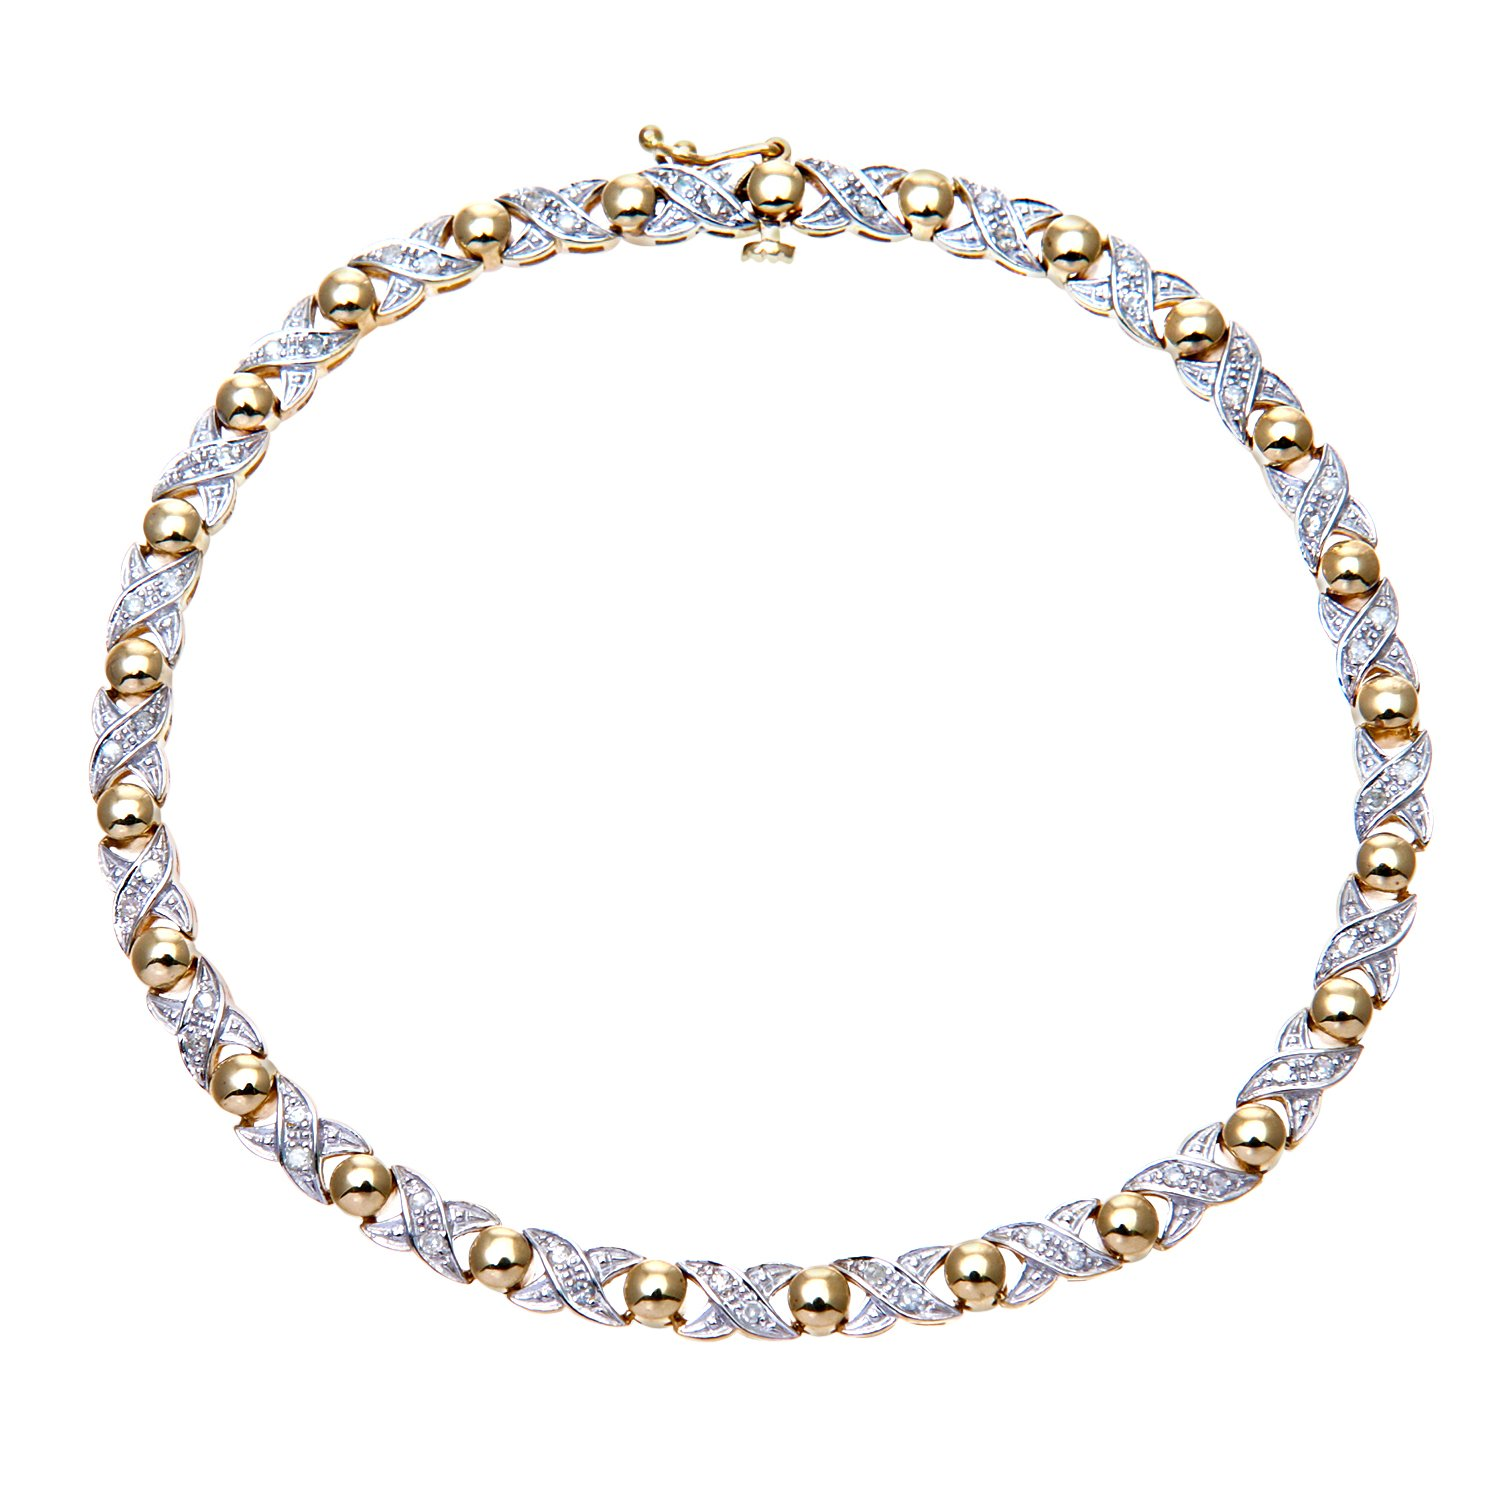 La s Diamond Bracelet 9ct Yellow Gold Pave Setting 0 25 Carat